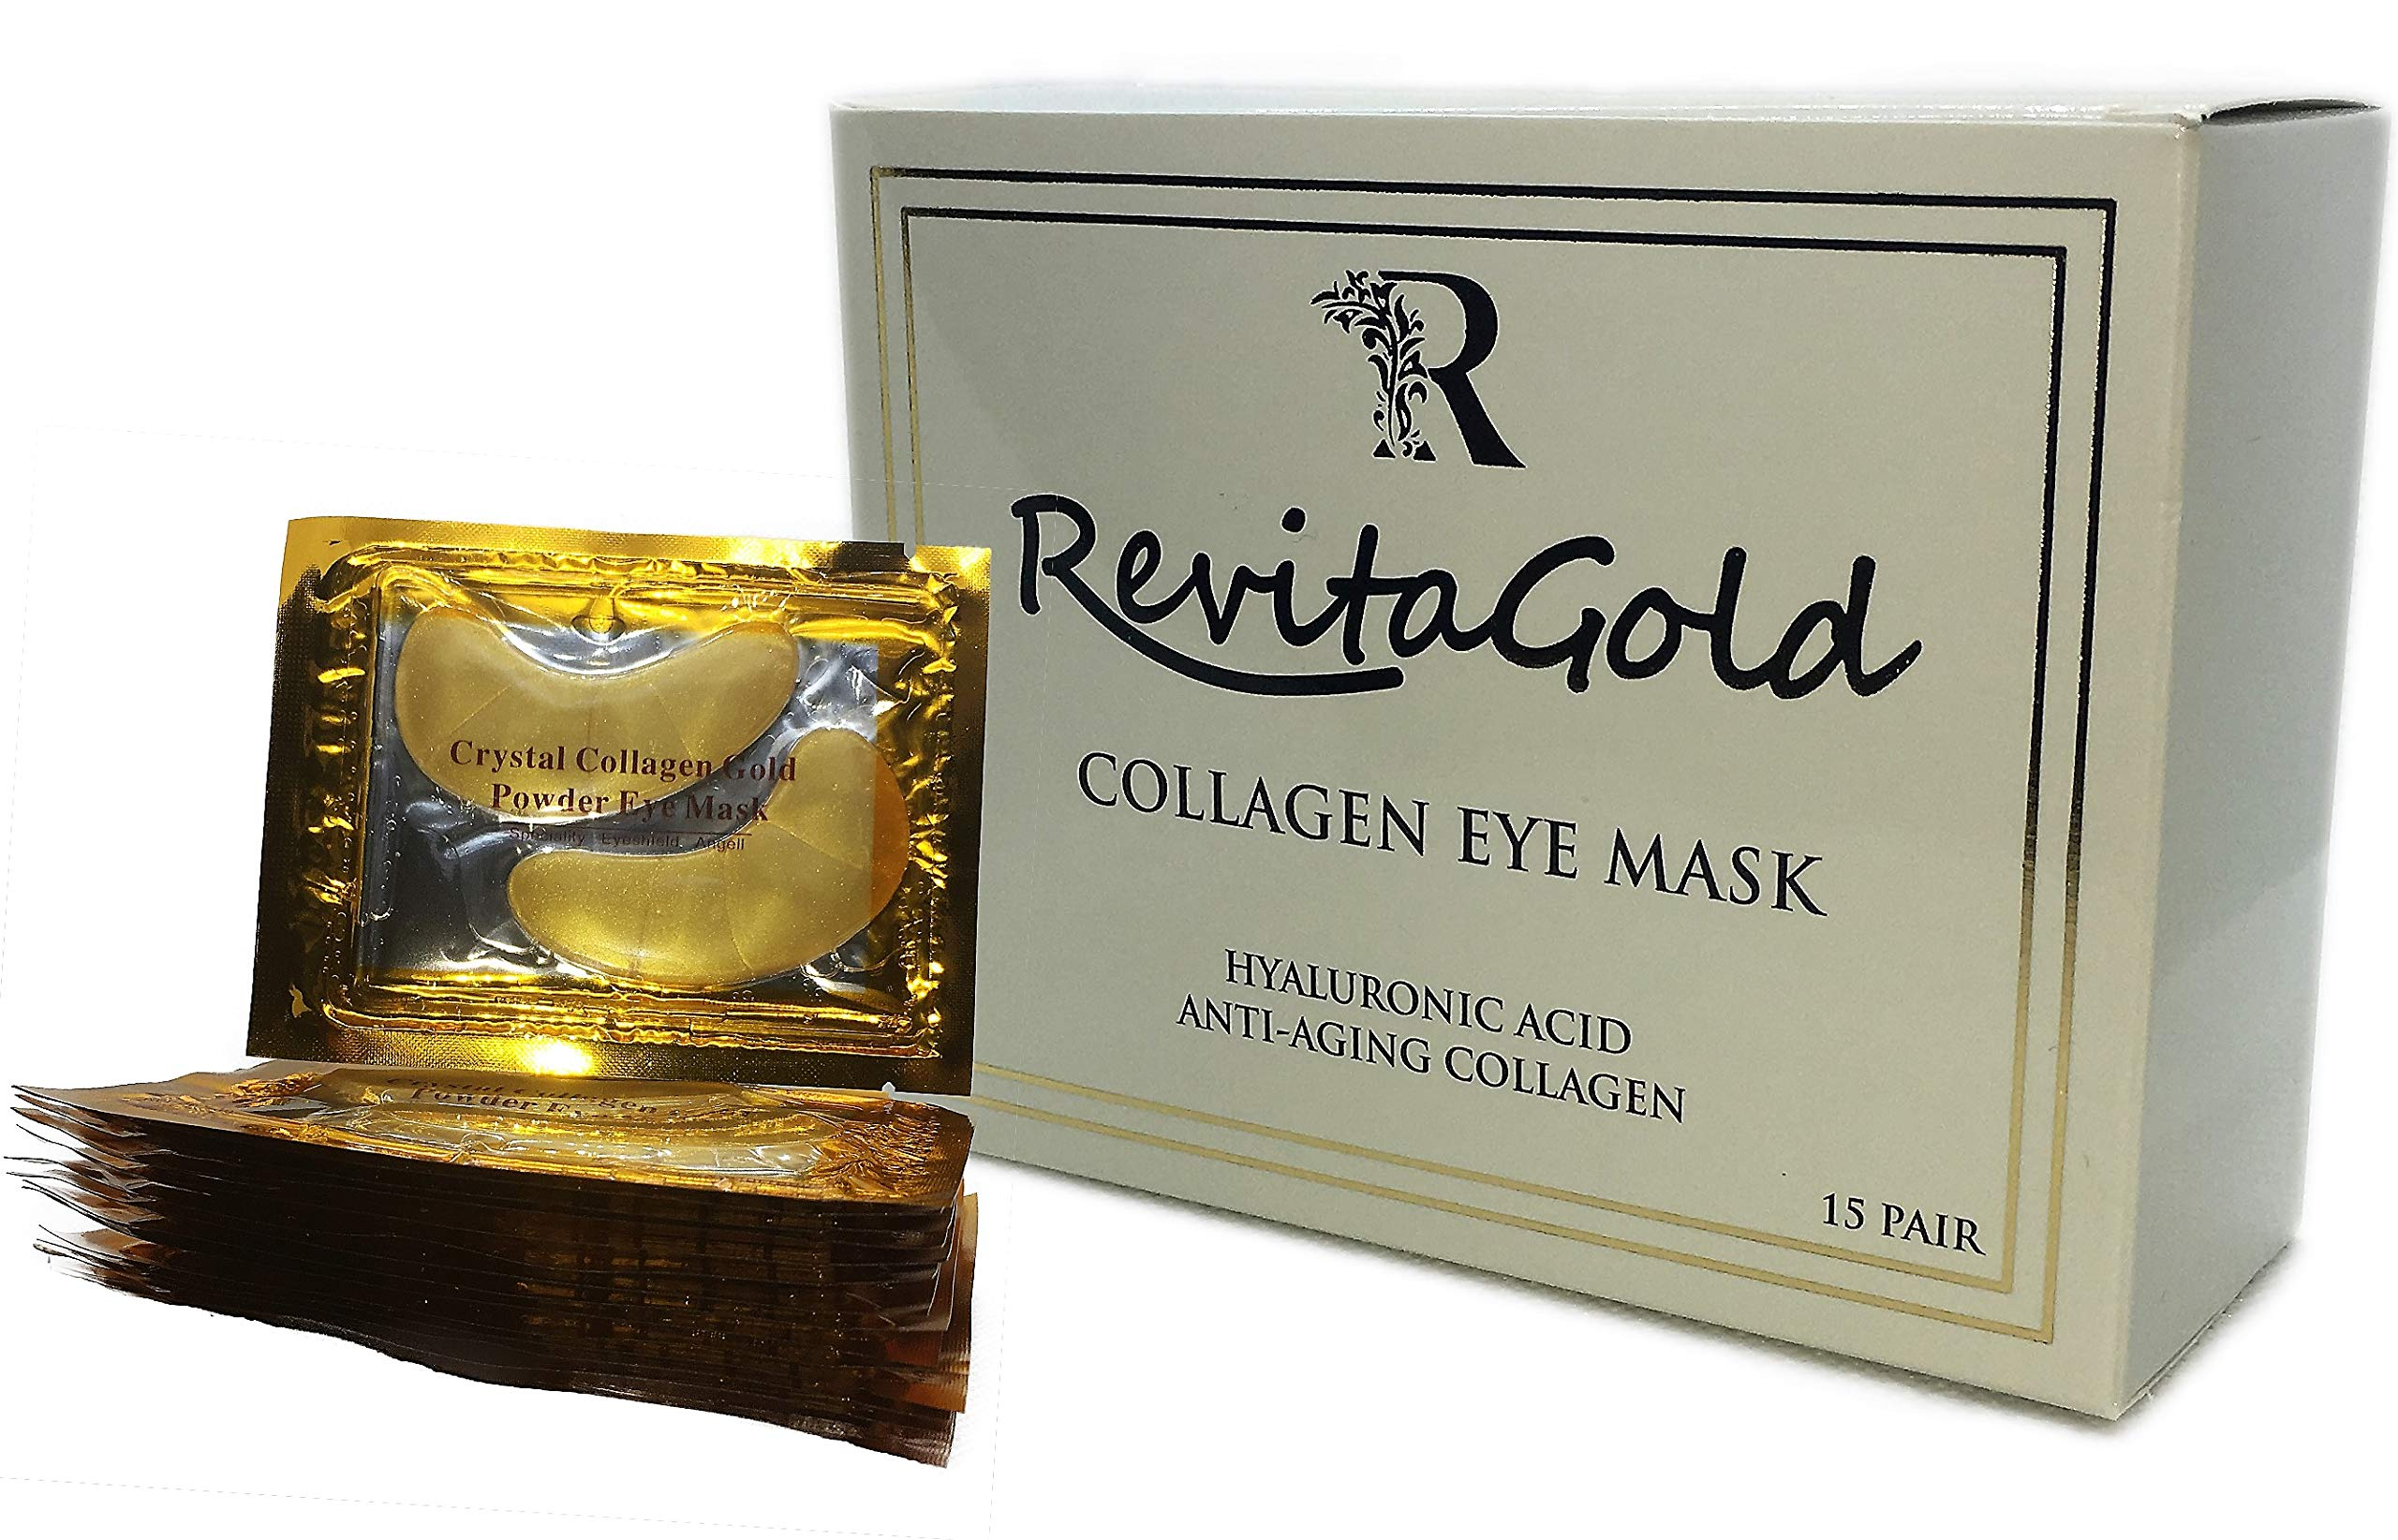 Under Eye Patches Premium Collagen Eye Mask for Puffy Eyes Made with Hyaluronic Acid, Vitamins C & E, and Gold Particles for Under Eye Bags Treatment by RevitaGold